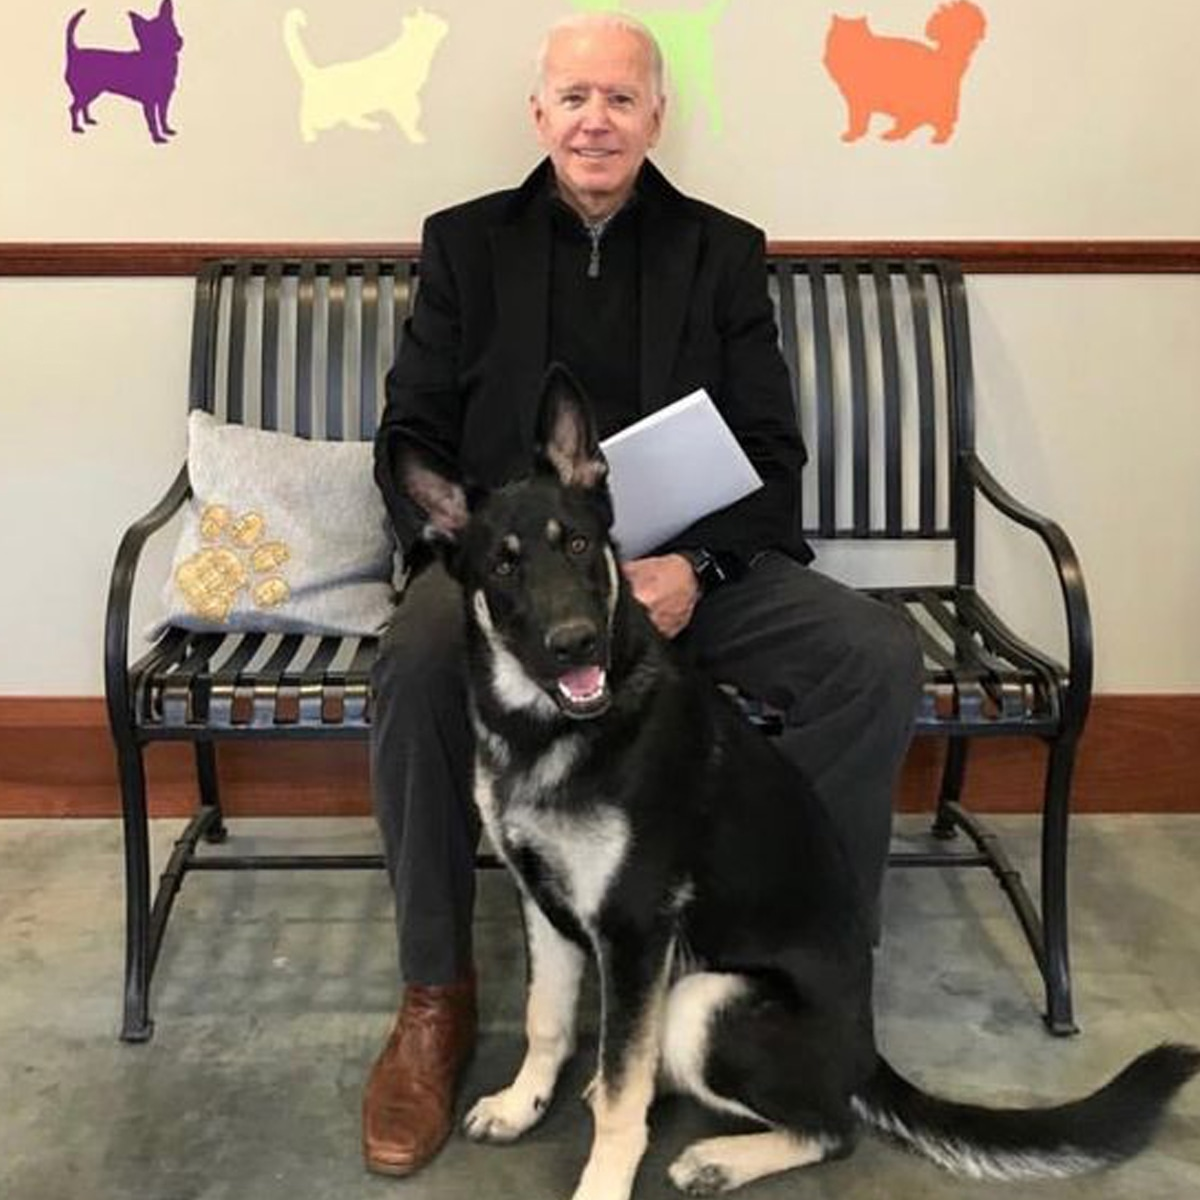 This Says a Lot…Joe Biden will Unite Cat with Dogs in the White House